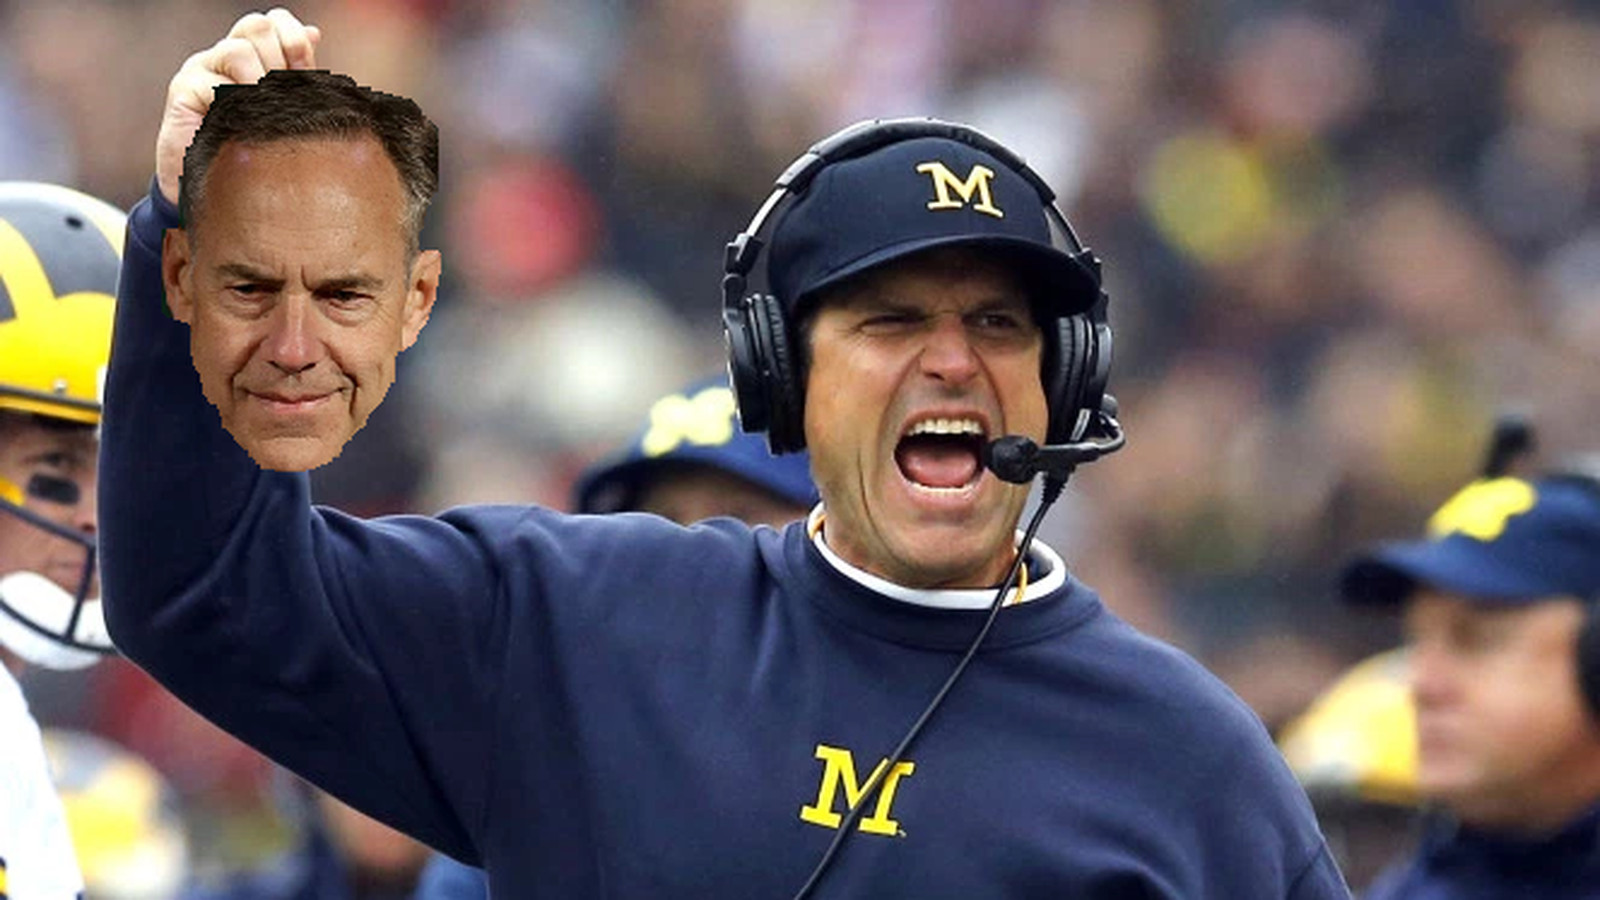 Harbaugh_20with_20the_20head_20of_20dantonio.0